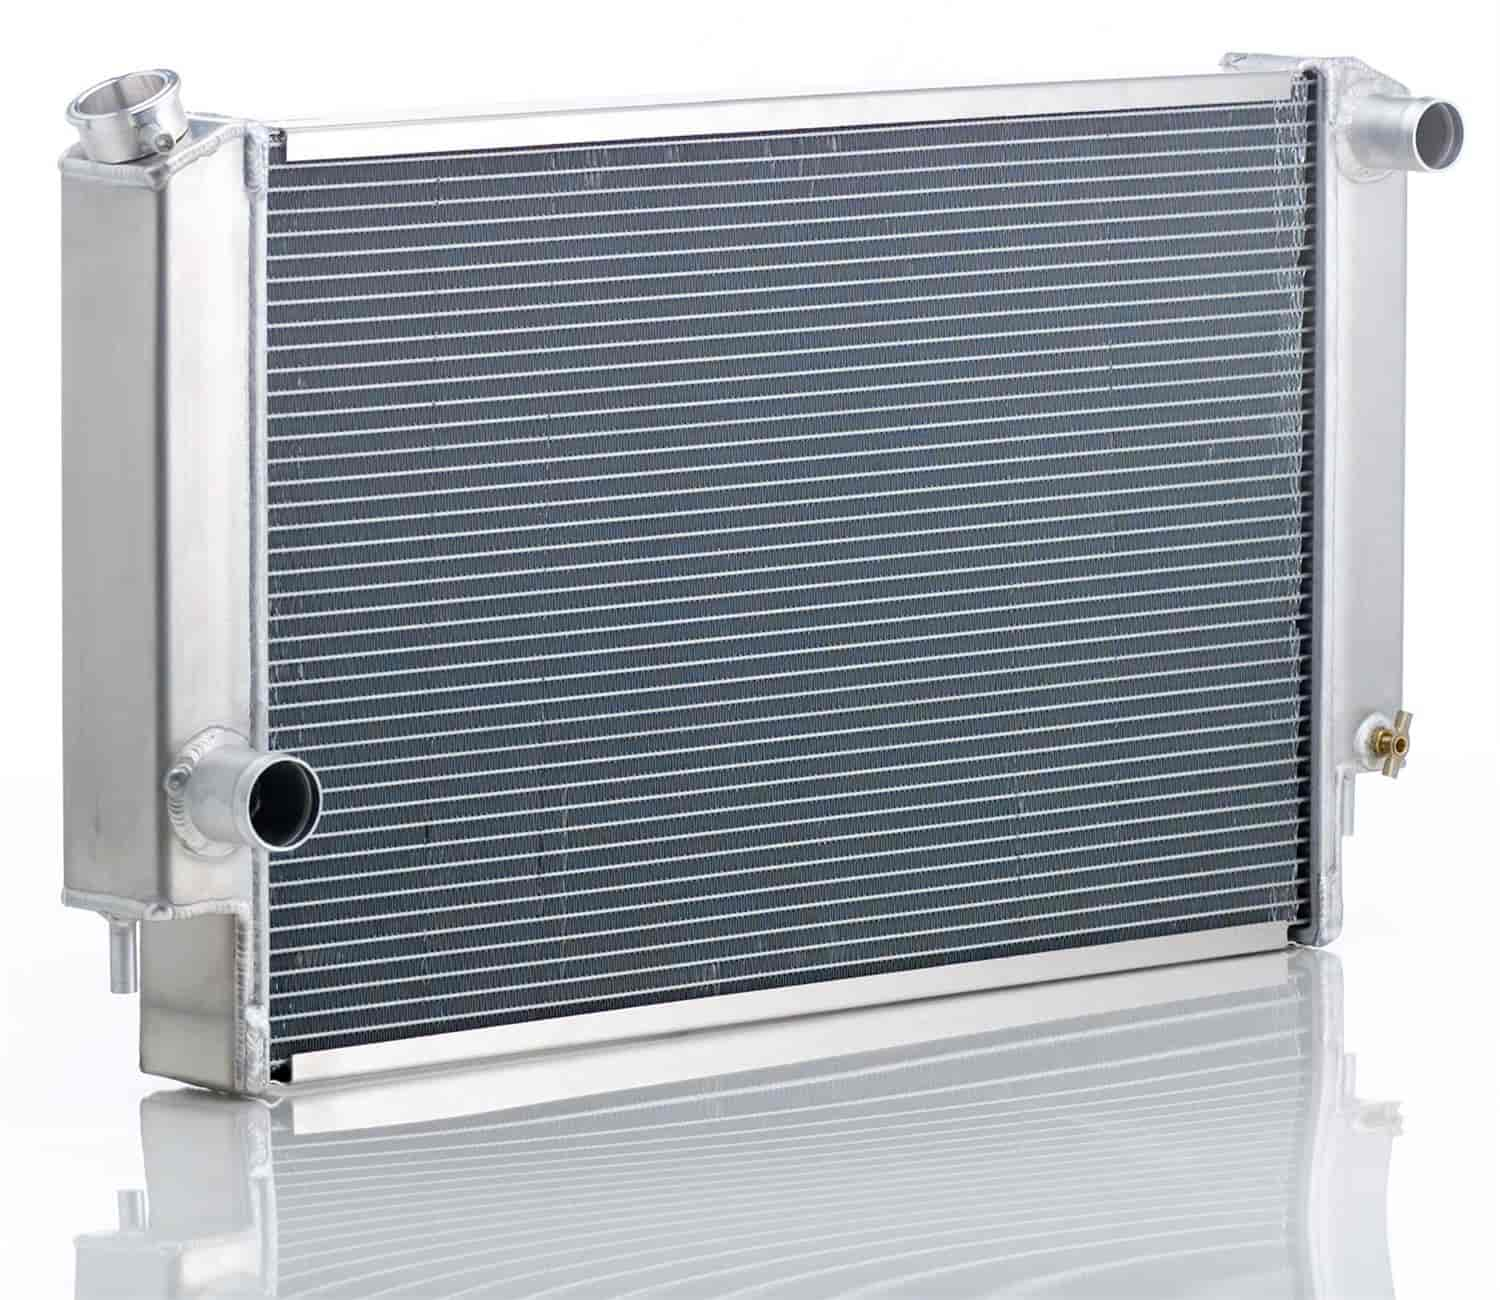 Be Cool Radiators 60172 - Be Cool Crossflow Aluminum Radiators